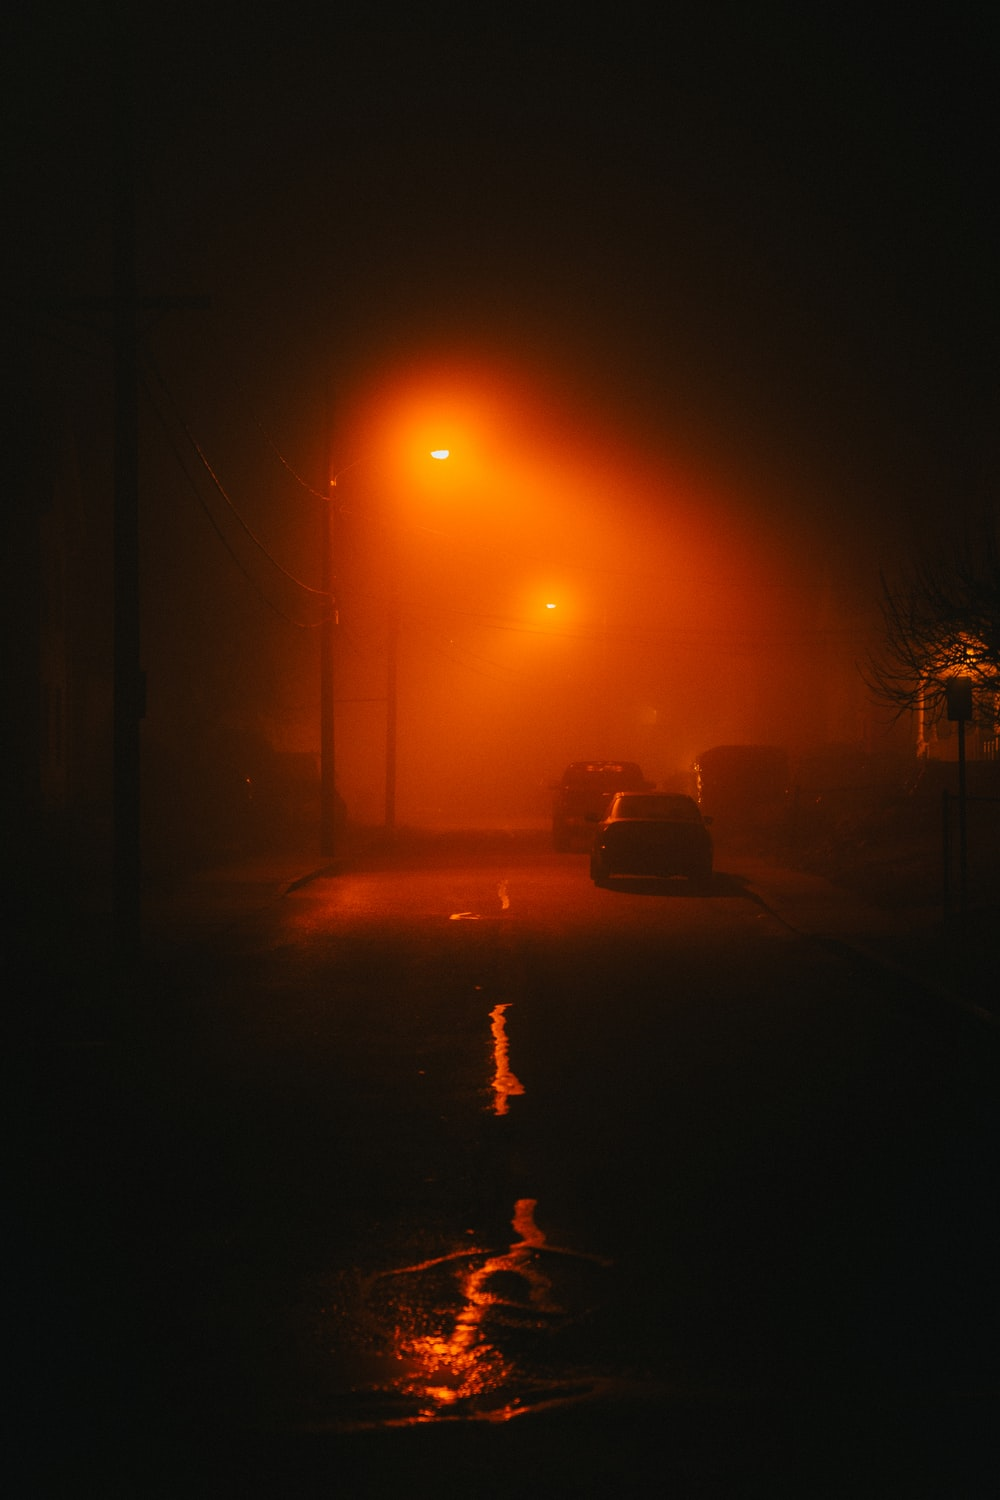 car on road during night time